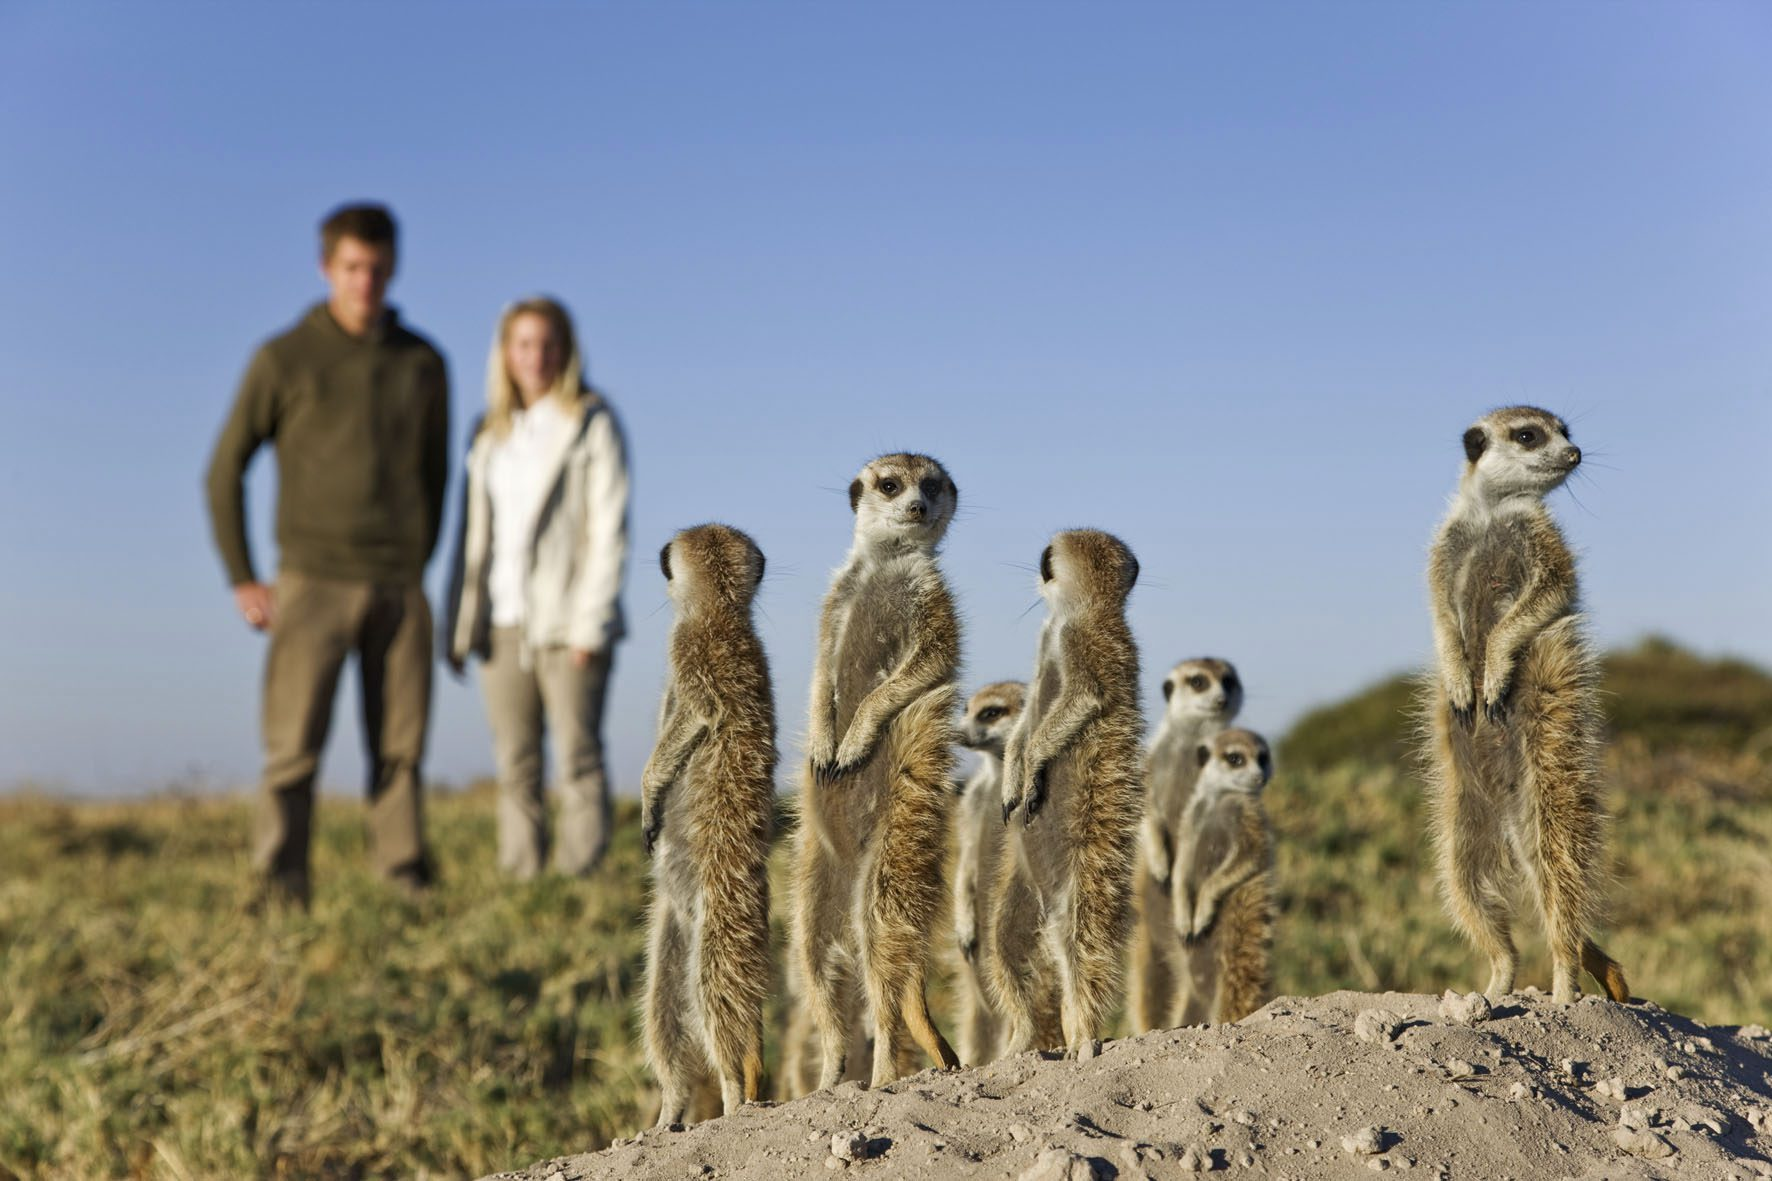 Habituated meerkates standing tall with safari guests in background, Jacks Camp